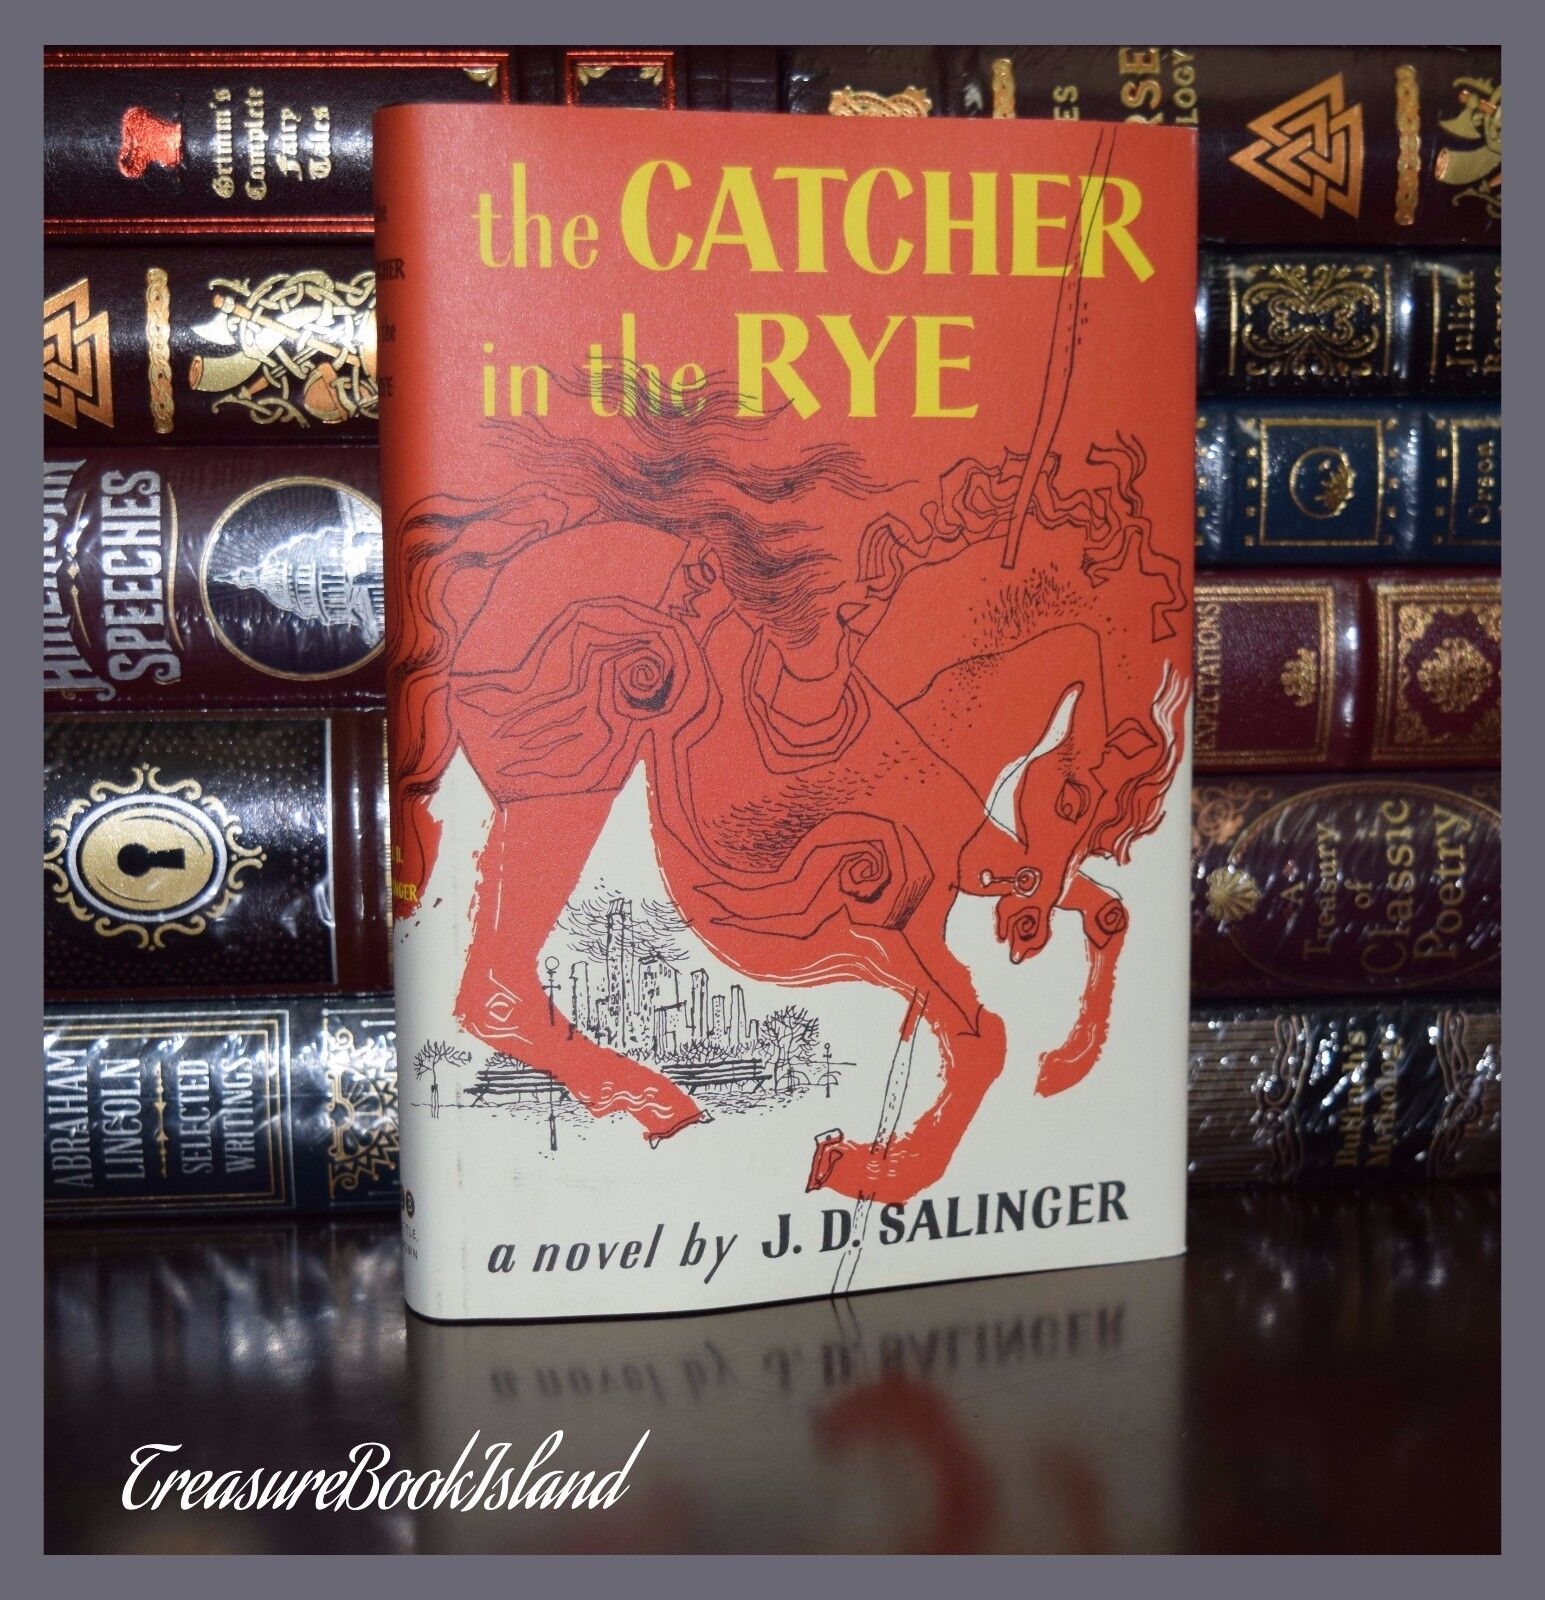 an analysis of symbolic items in the catcher in the rye a novel by j d salinger Issuu is a digital publishing j d salinger's the catcher in the rye glass-encased exhibits in his masterly novel no t e s 1 j d salinger, the.